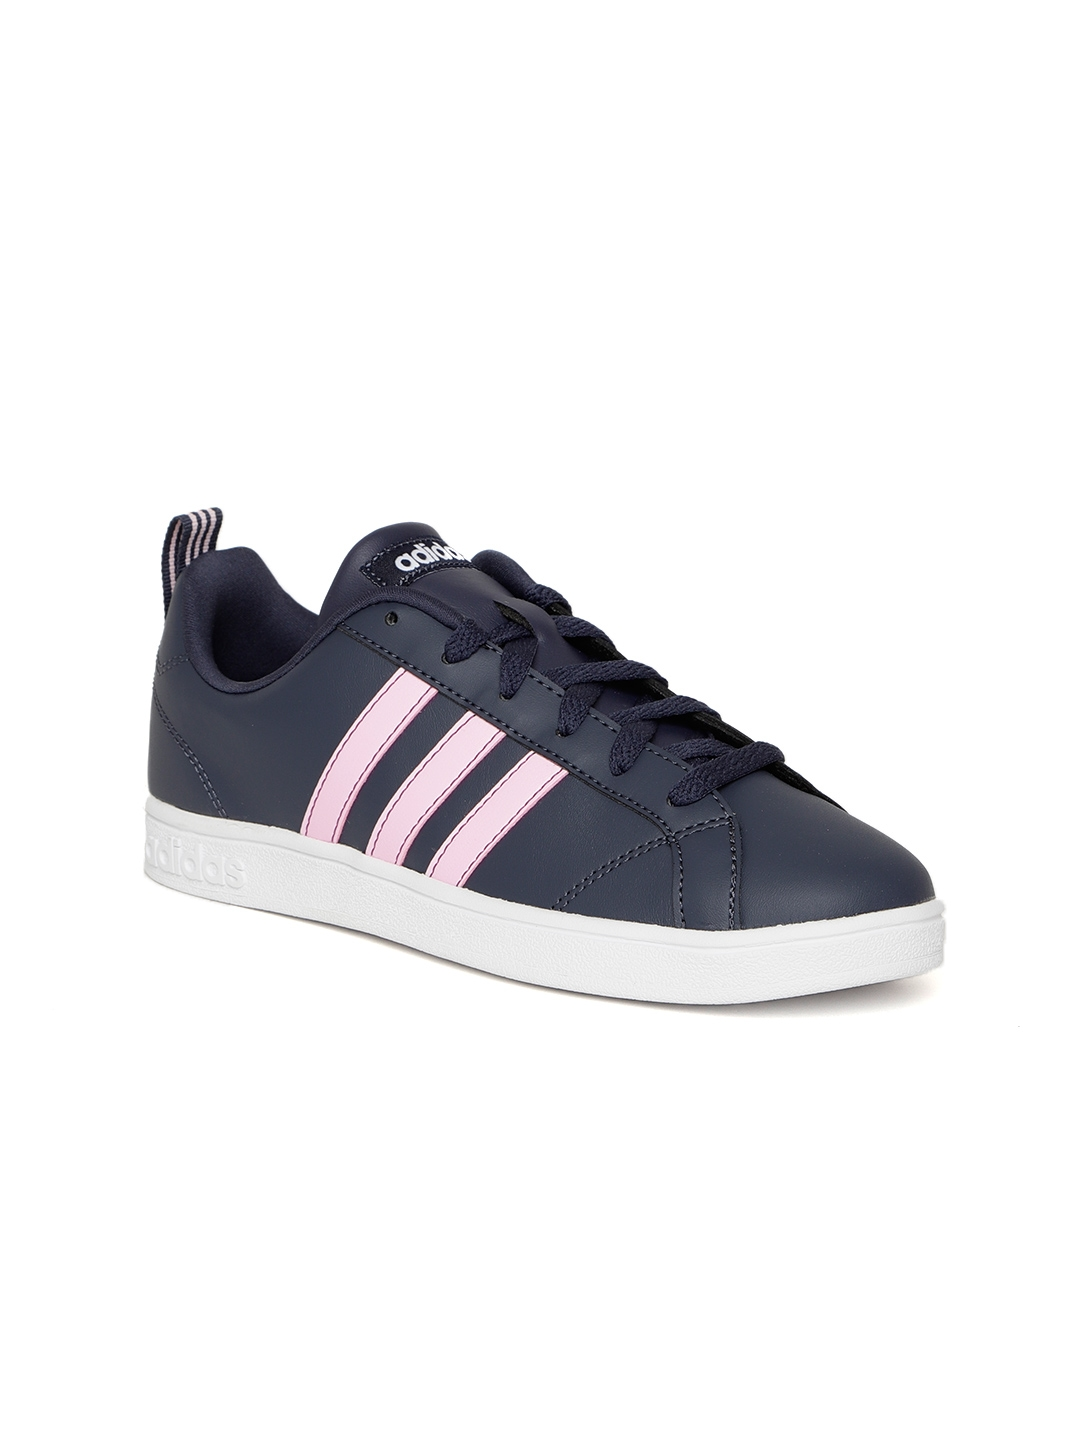 ae7ef109d2 Buy ADIDAS Women Navy Blue VS Advantage Tennis Shoes - Sports Shoes ...